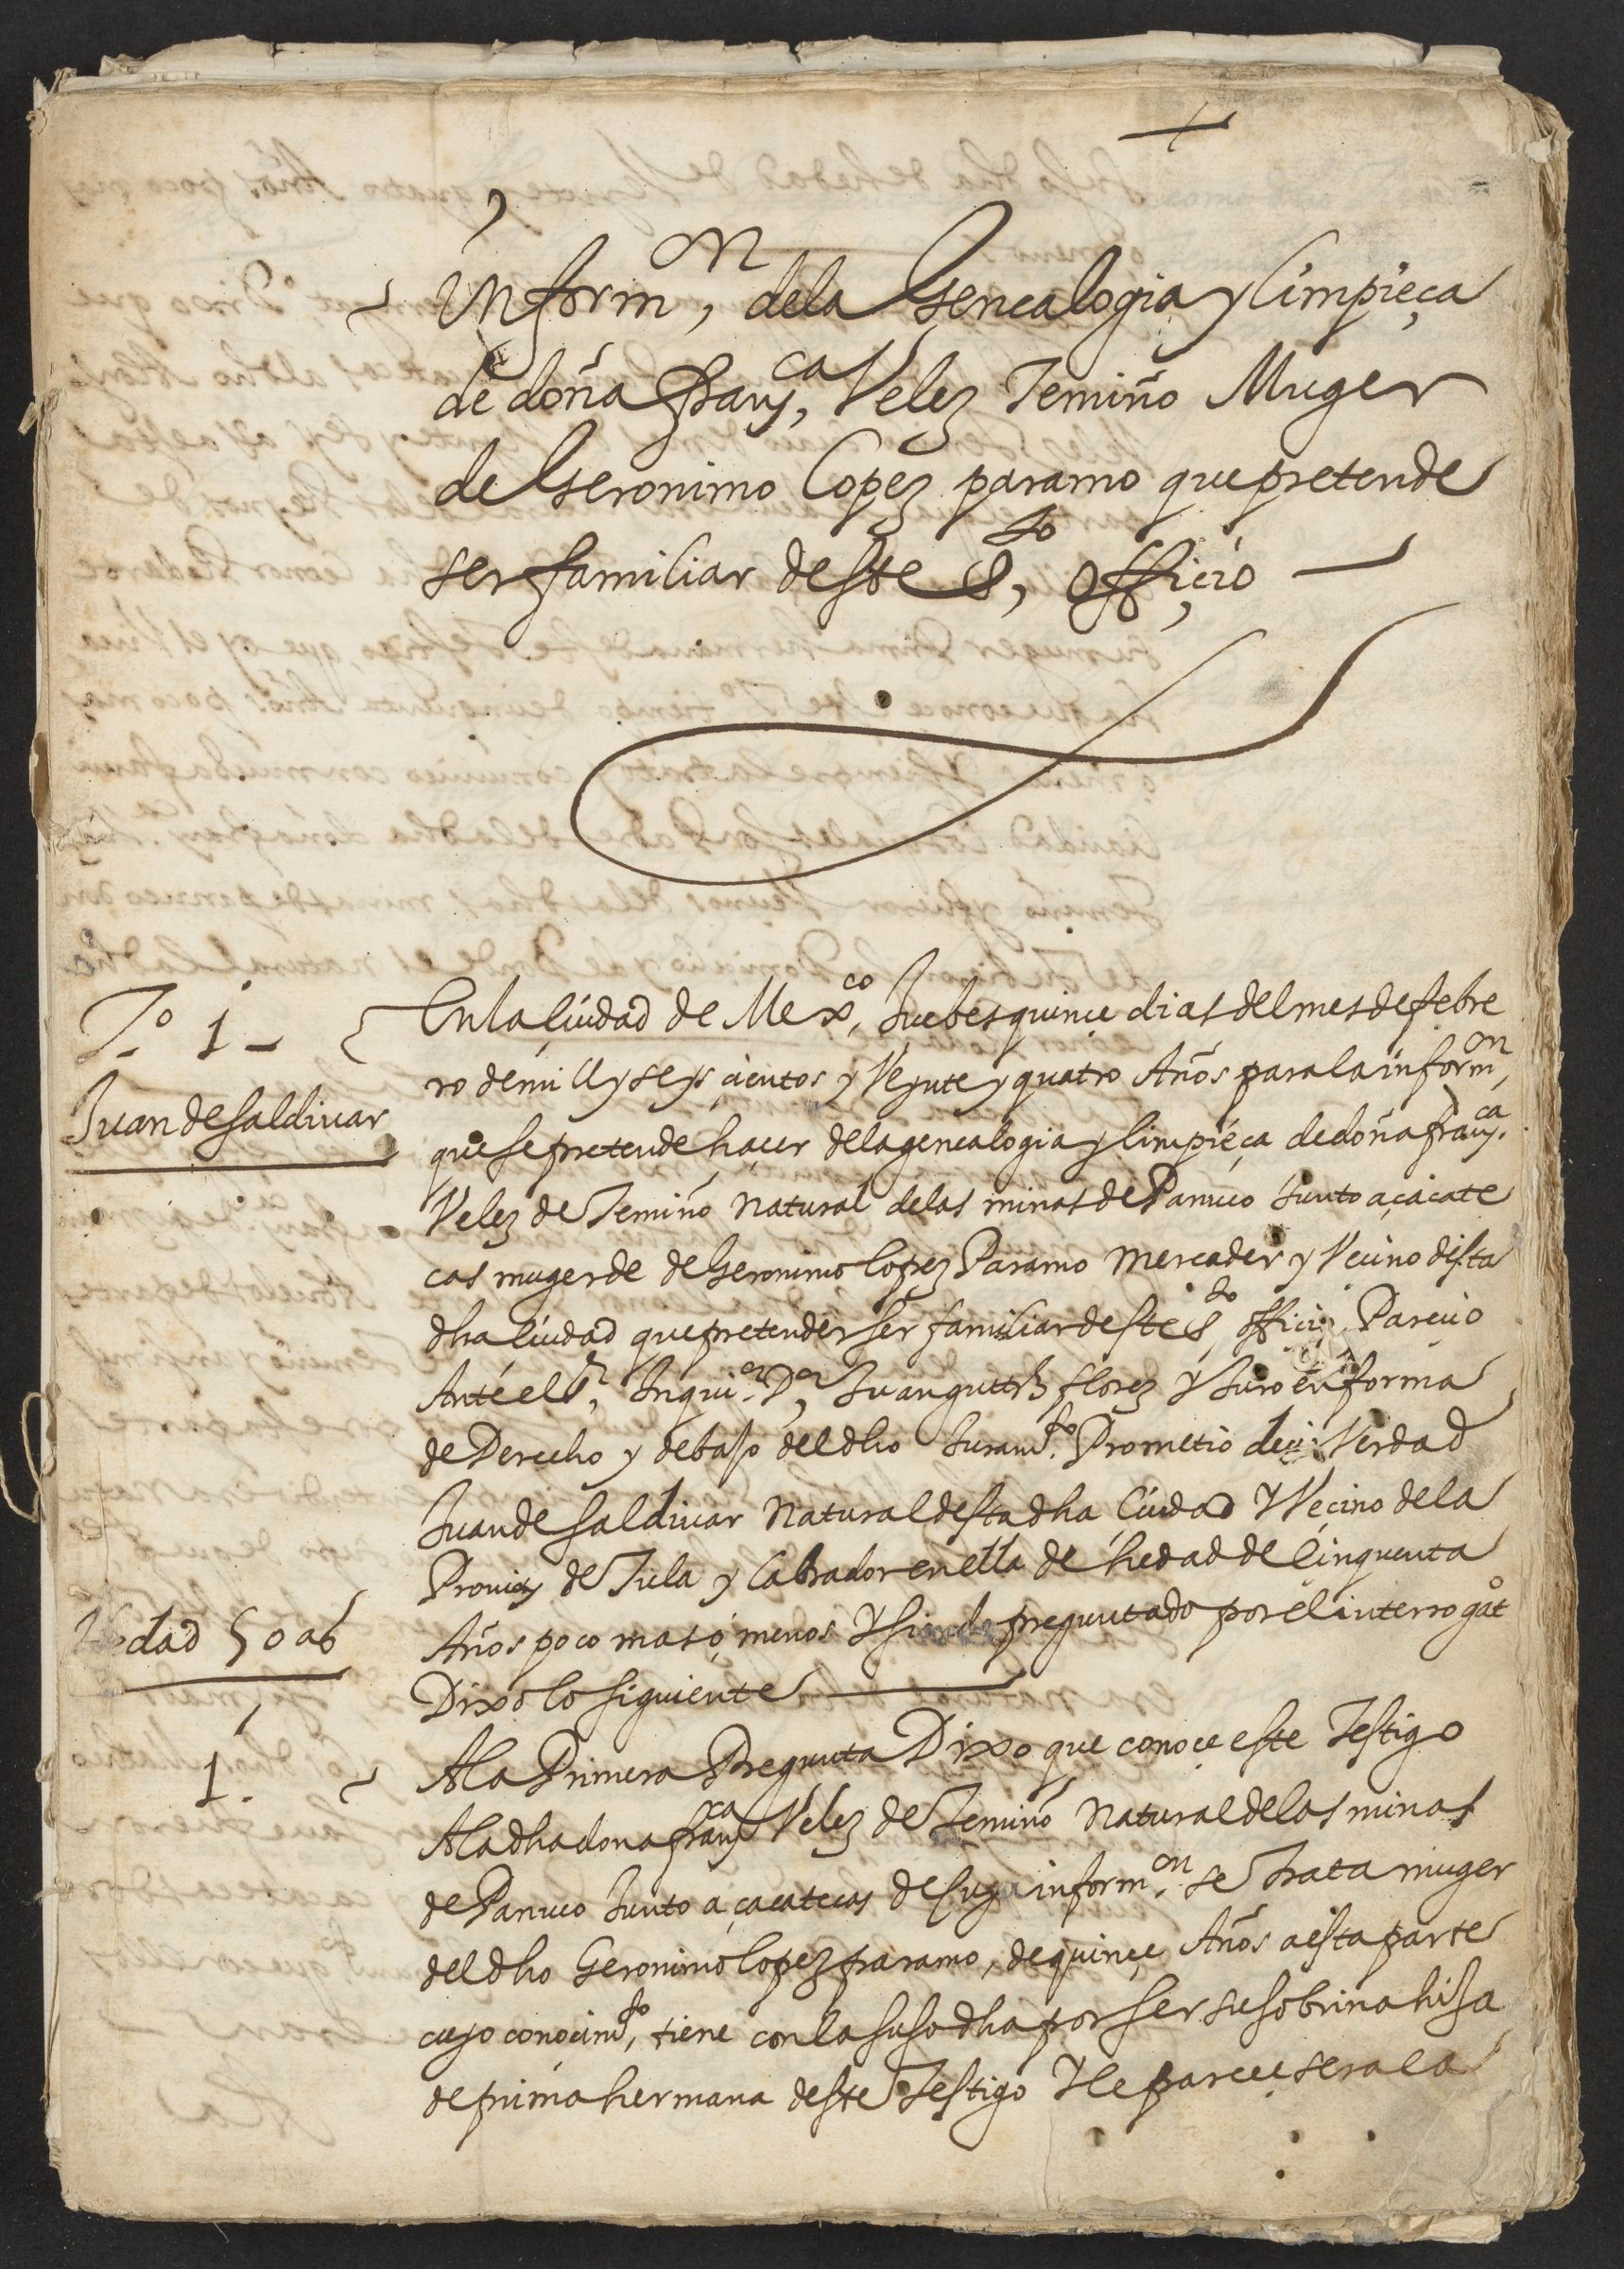 "Inquest of the genealogy and ""limpieza de sangre"" of Doña Francisca Veles de Temiño, wife of Geronimo Lopez Paramo, 15 February 1624."